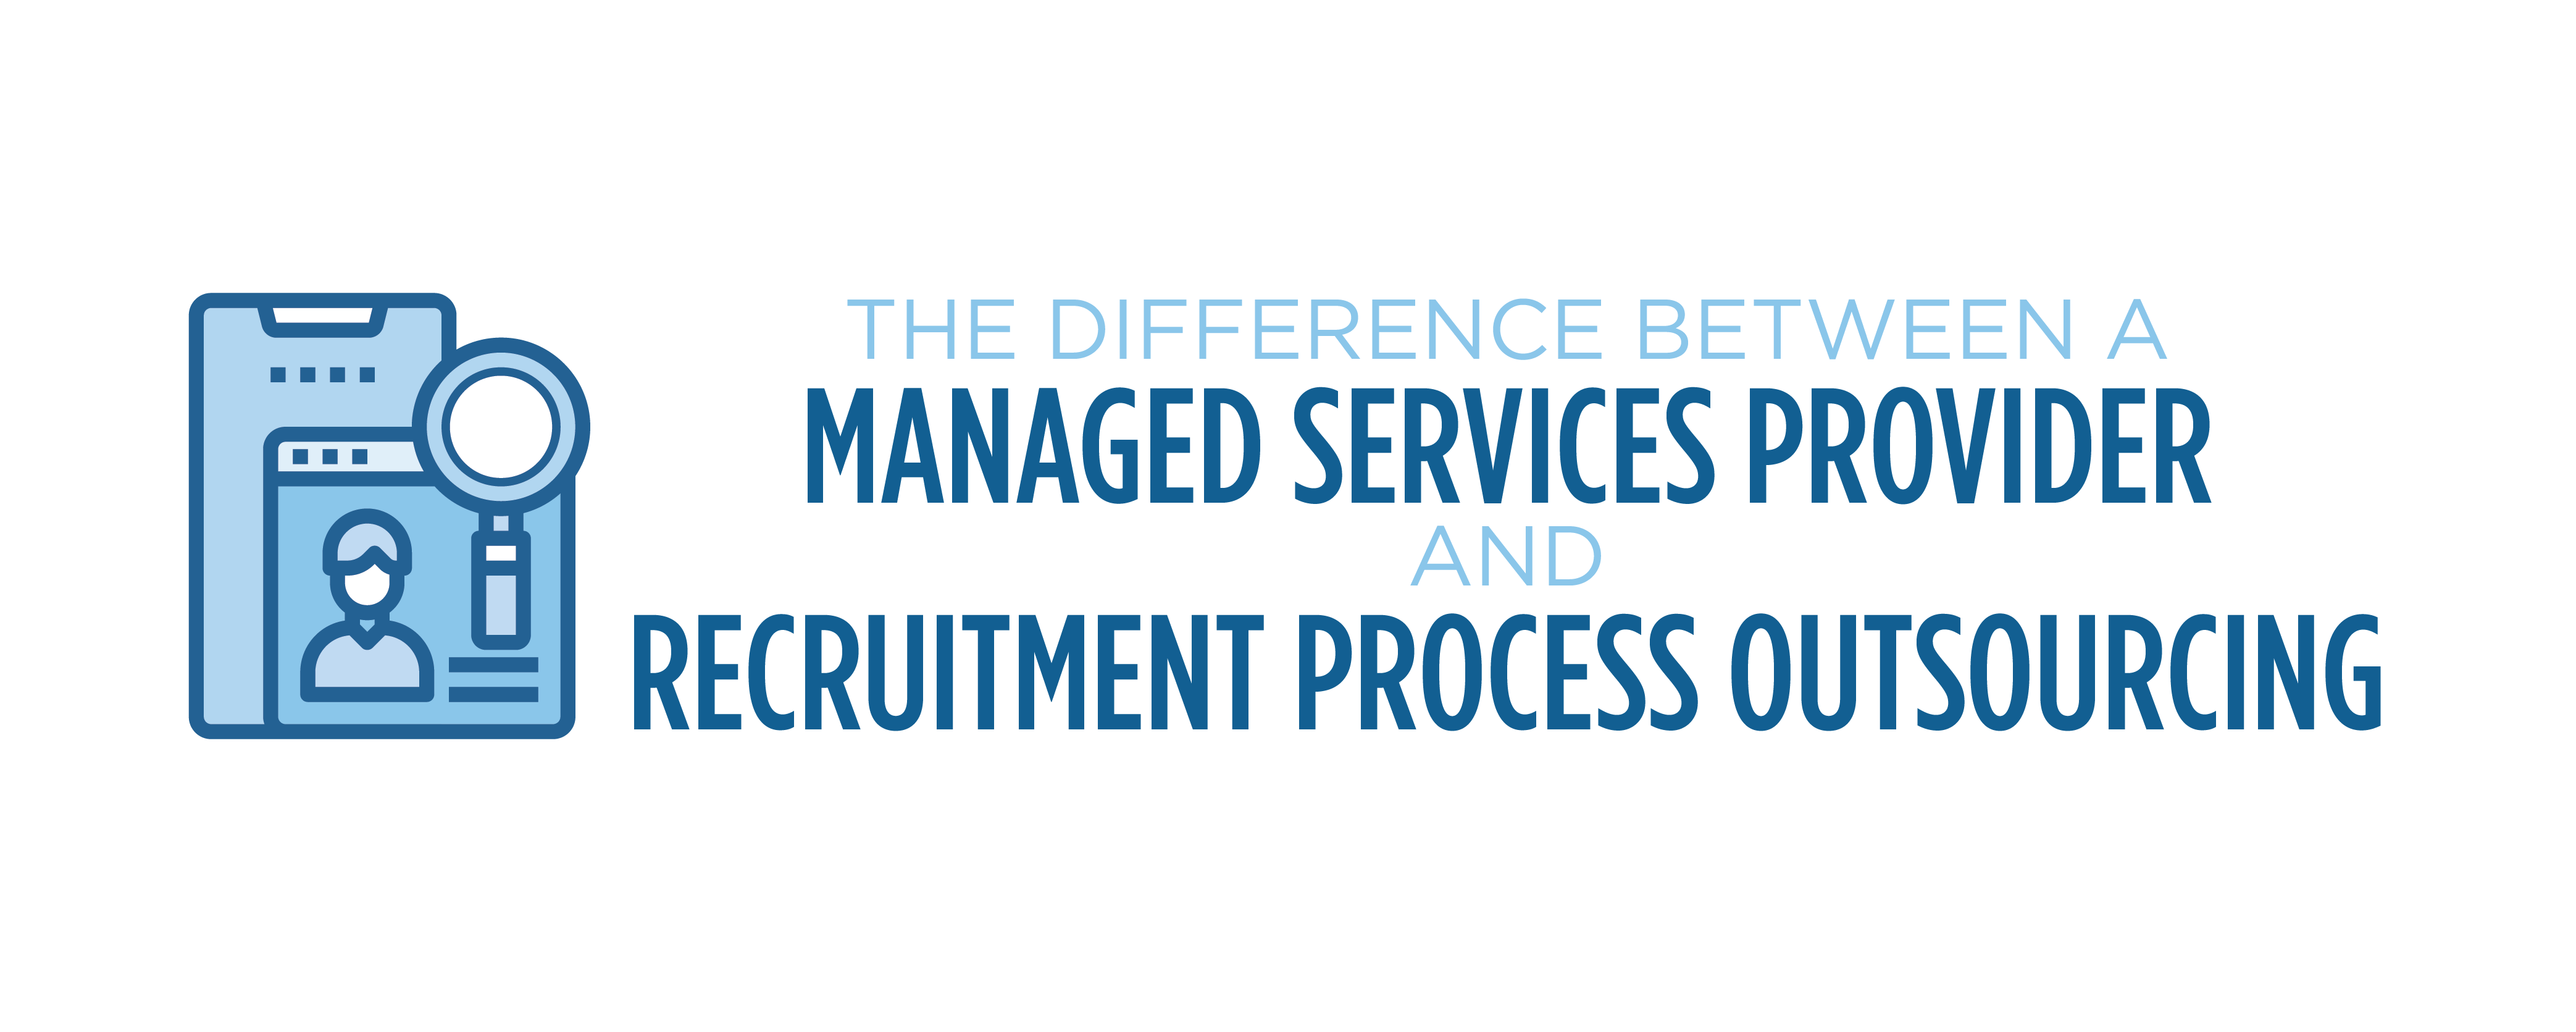 the difference between managed services provider and recruitment process outsourcing